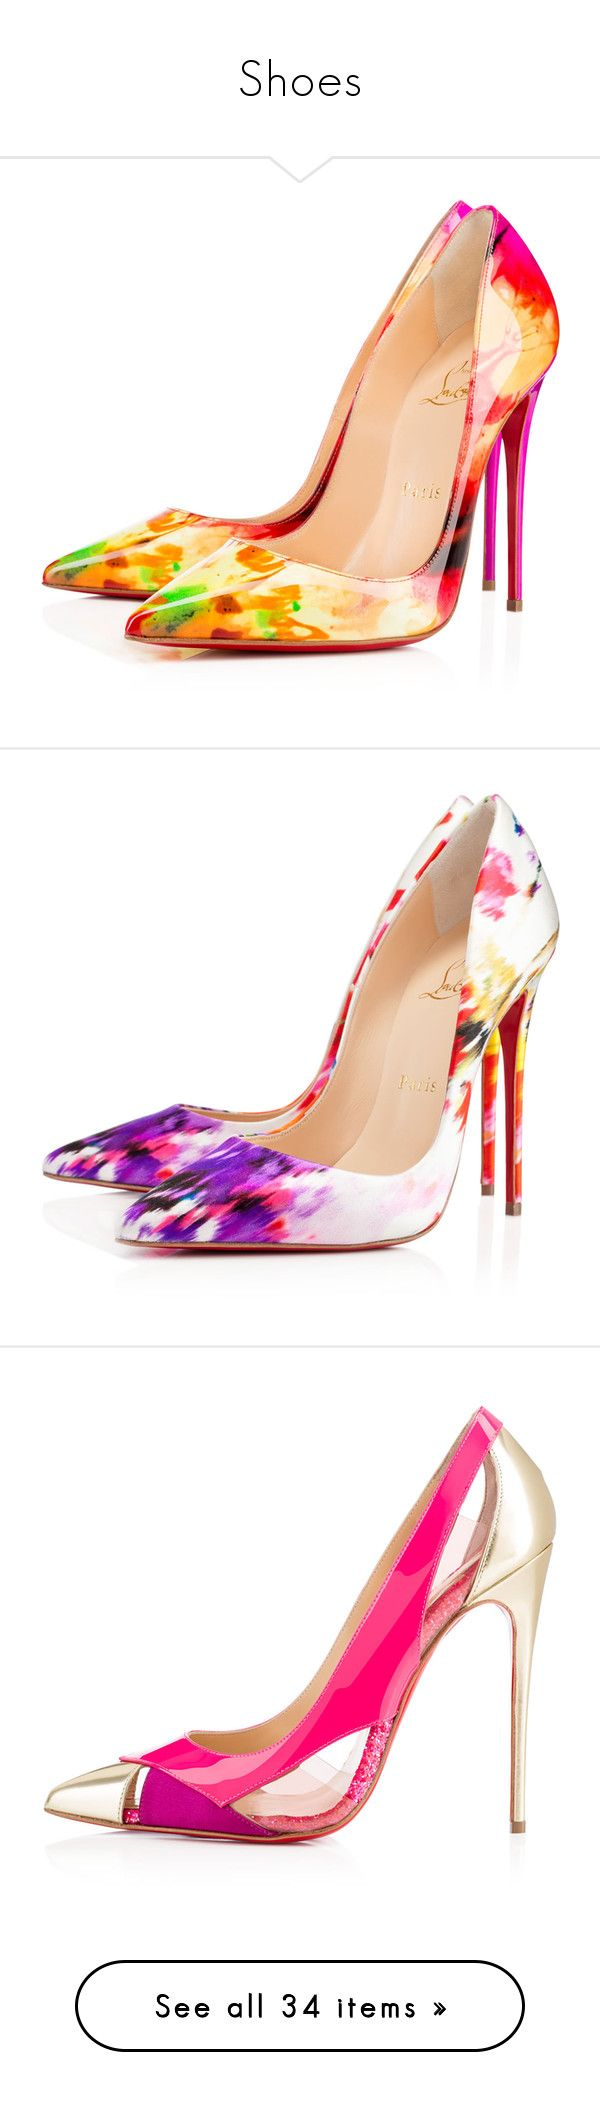 """Shoes"" by asia-12 ❤ liked on Polyvore featuring shoes, pumps, heels, christian louboutin, heels stilettos, summer pumps, multi color pumps, multi colored pumps, christian louboutin pumps and high heels"